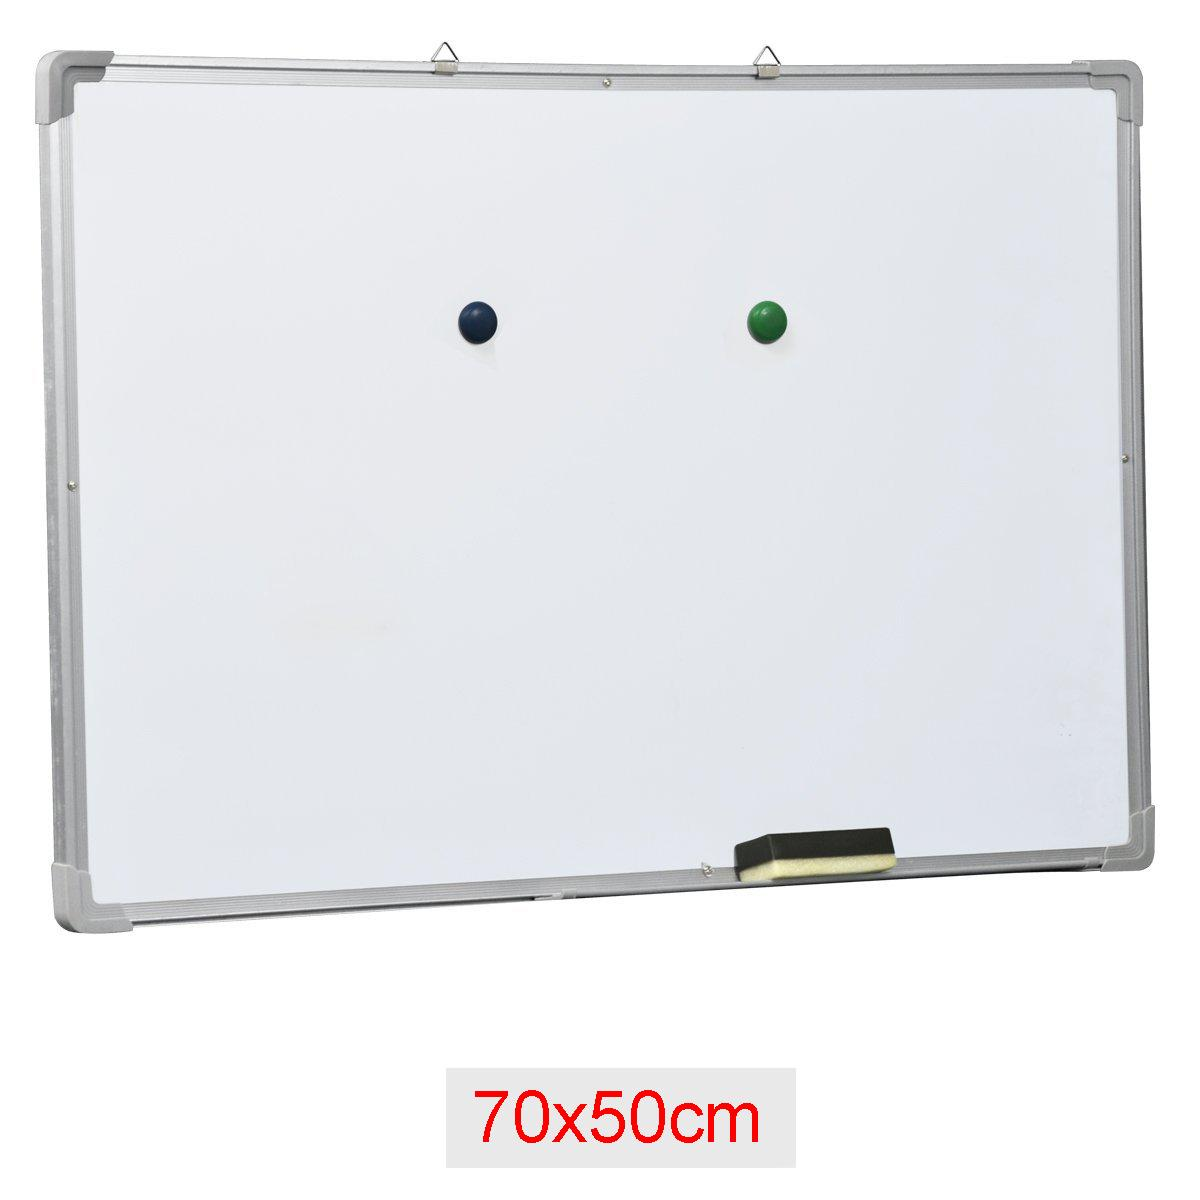 Abby Shi White Board New Different Size Aluminium Frame By Abbyshi.